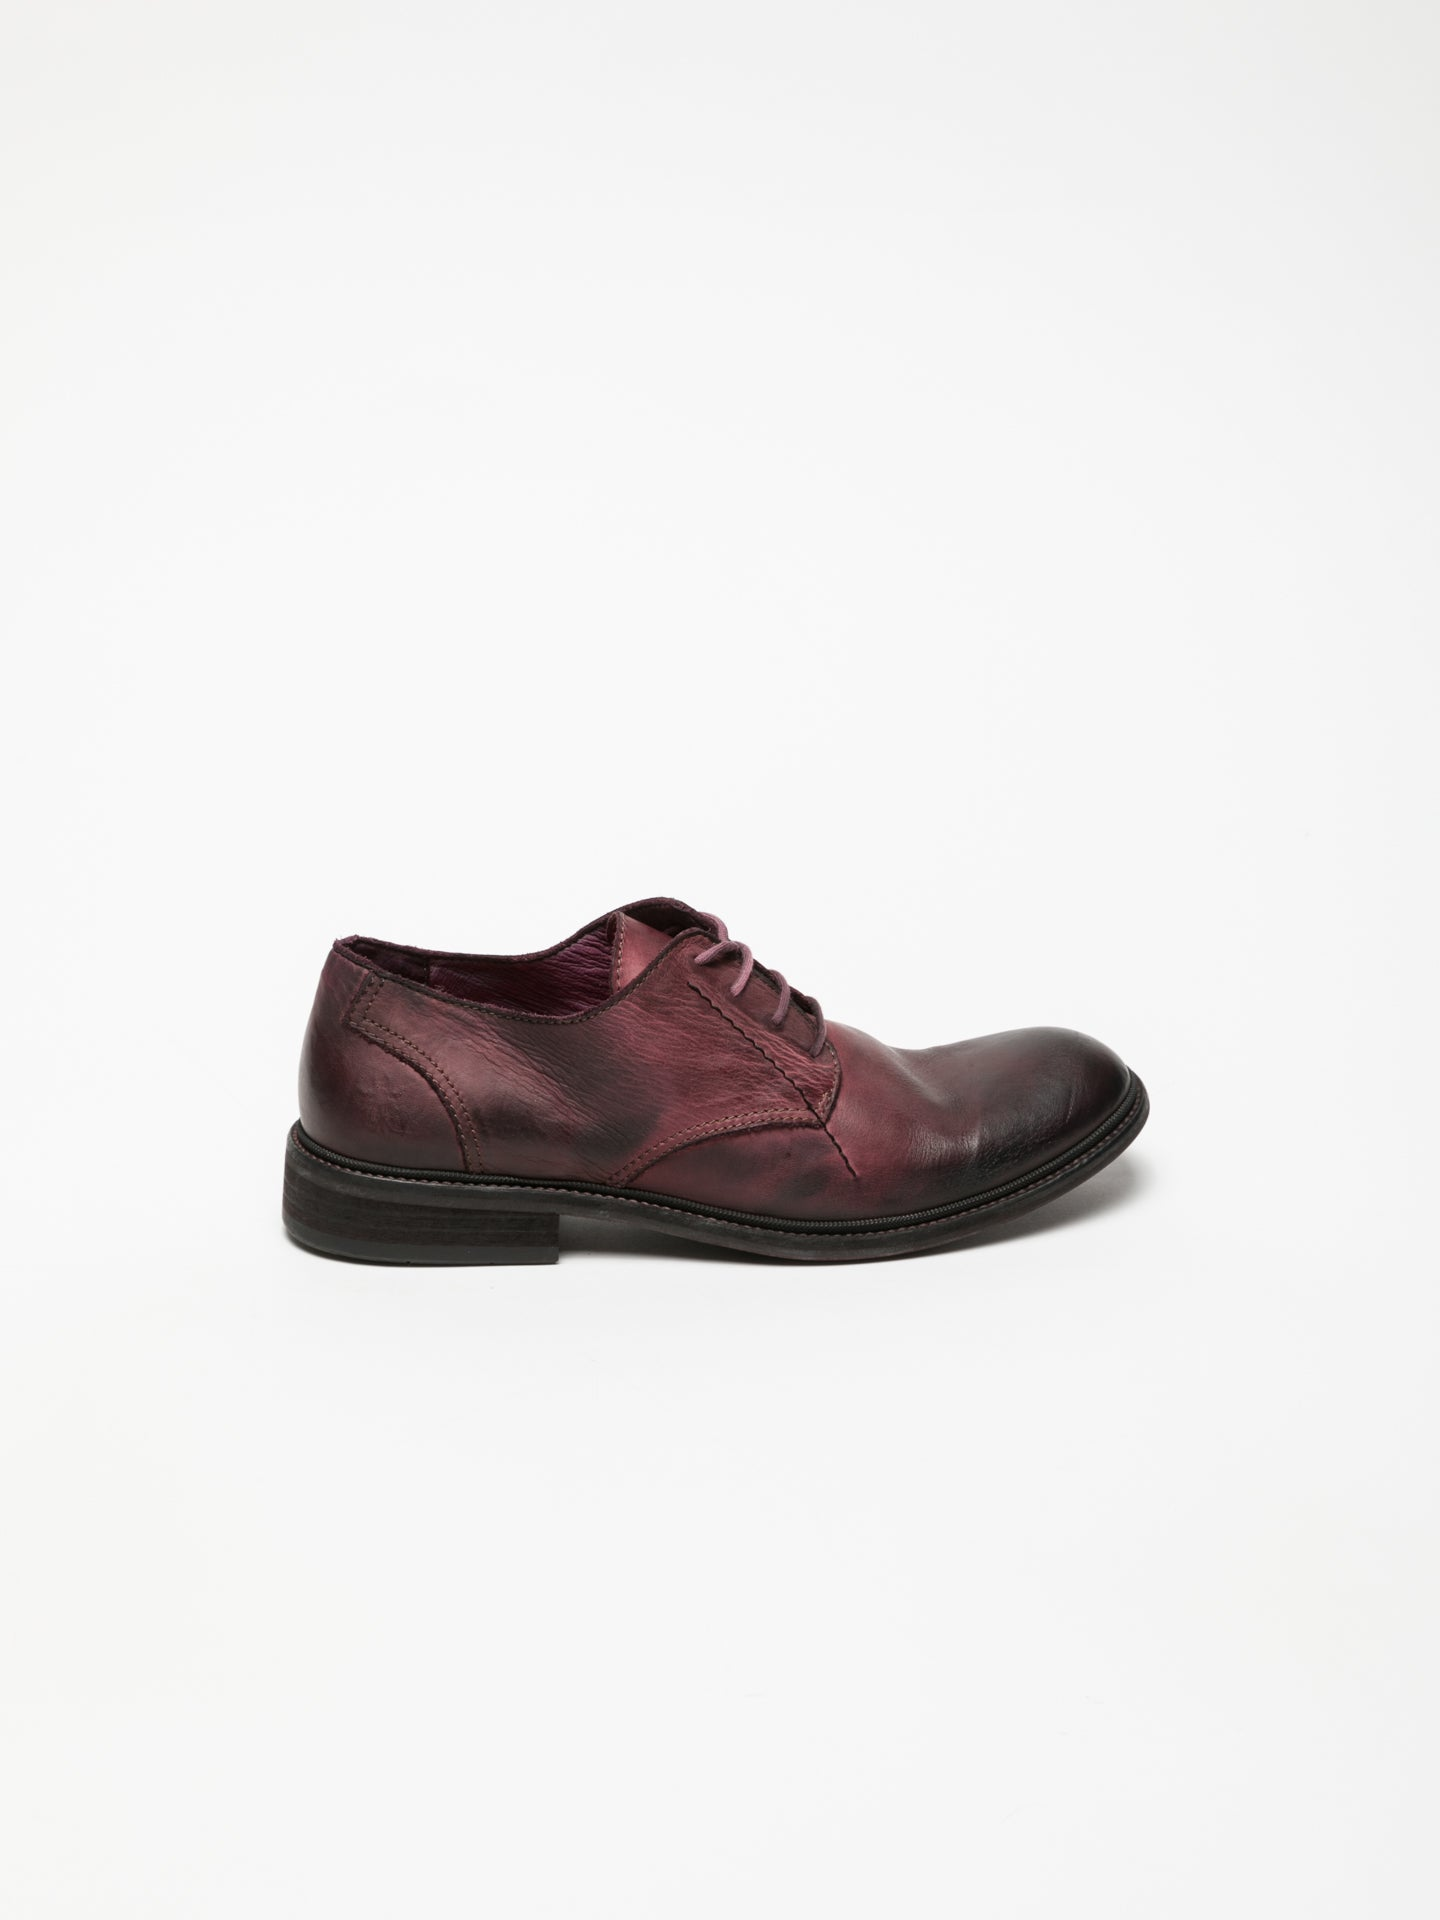 Fly London DarkRed Derby Shoes